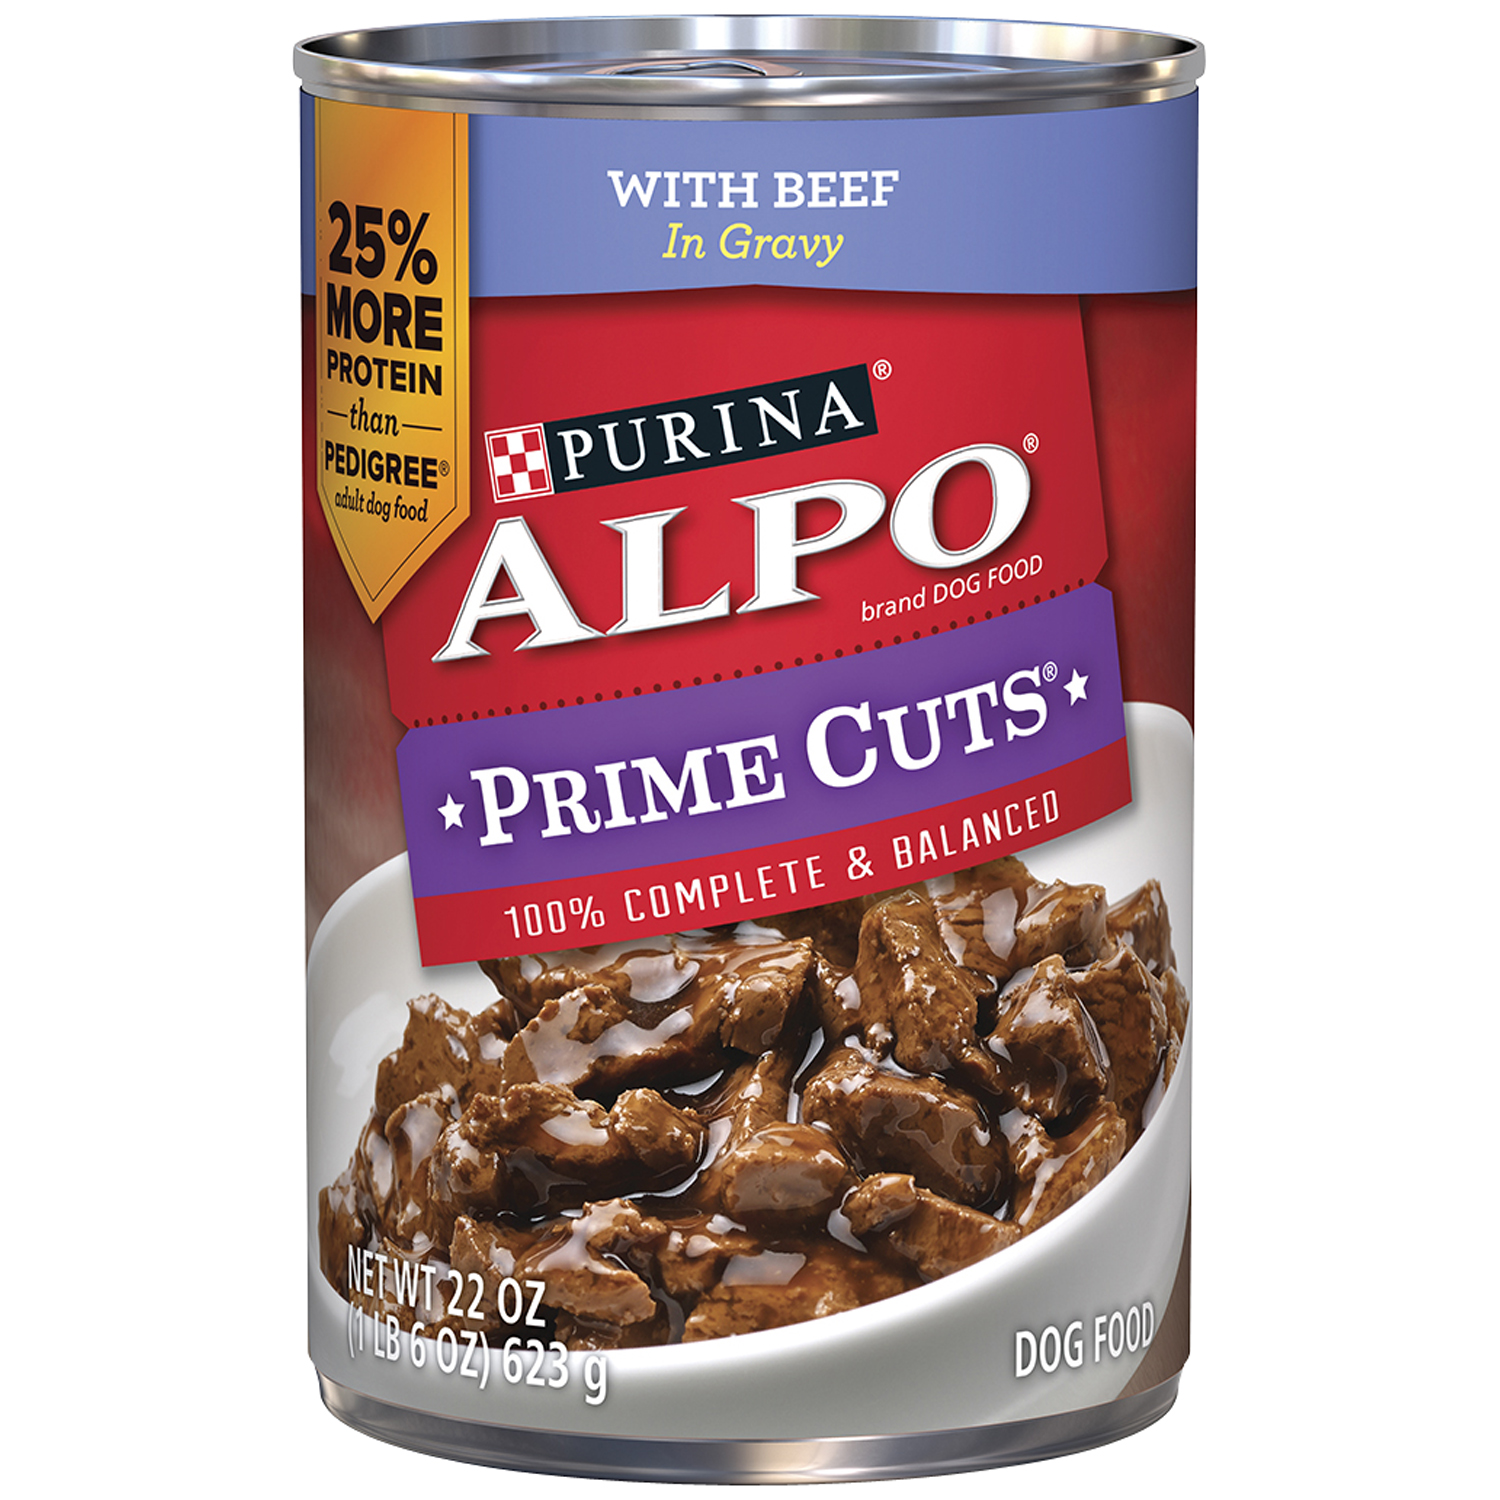 Prime Cuts With Beef in Gravy Dog Food